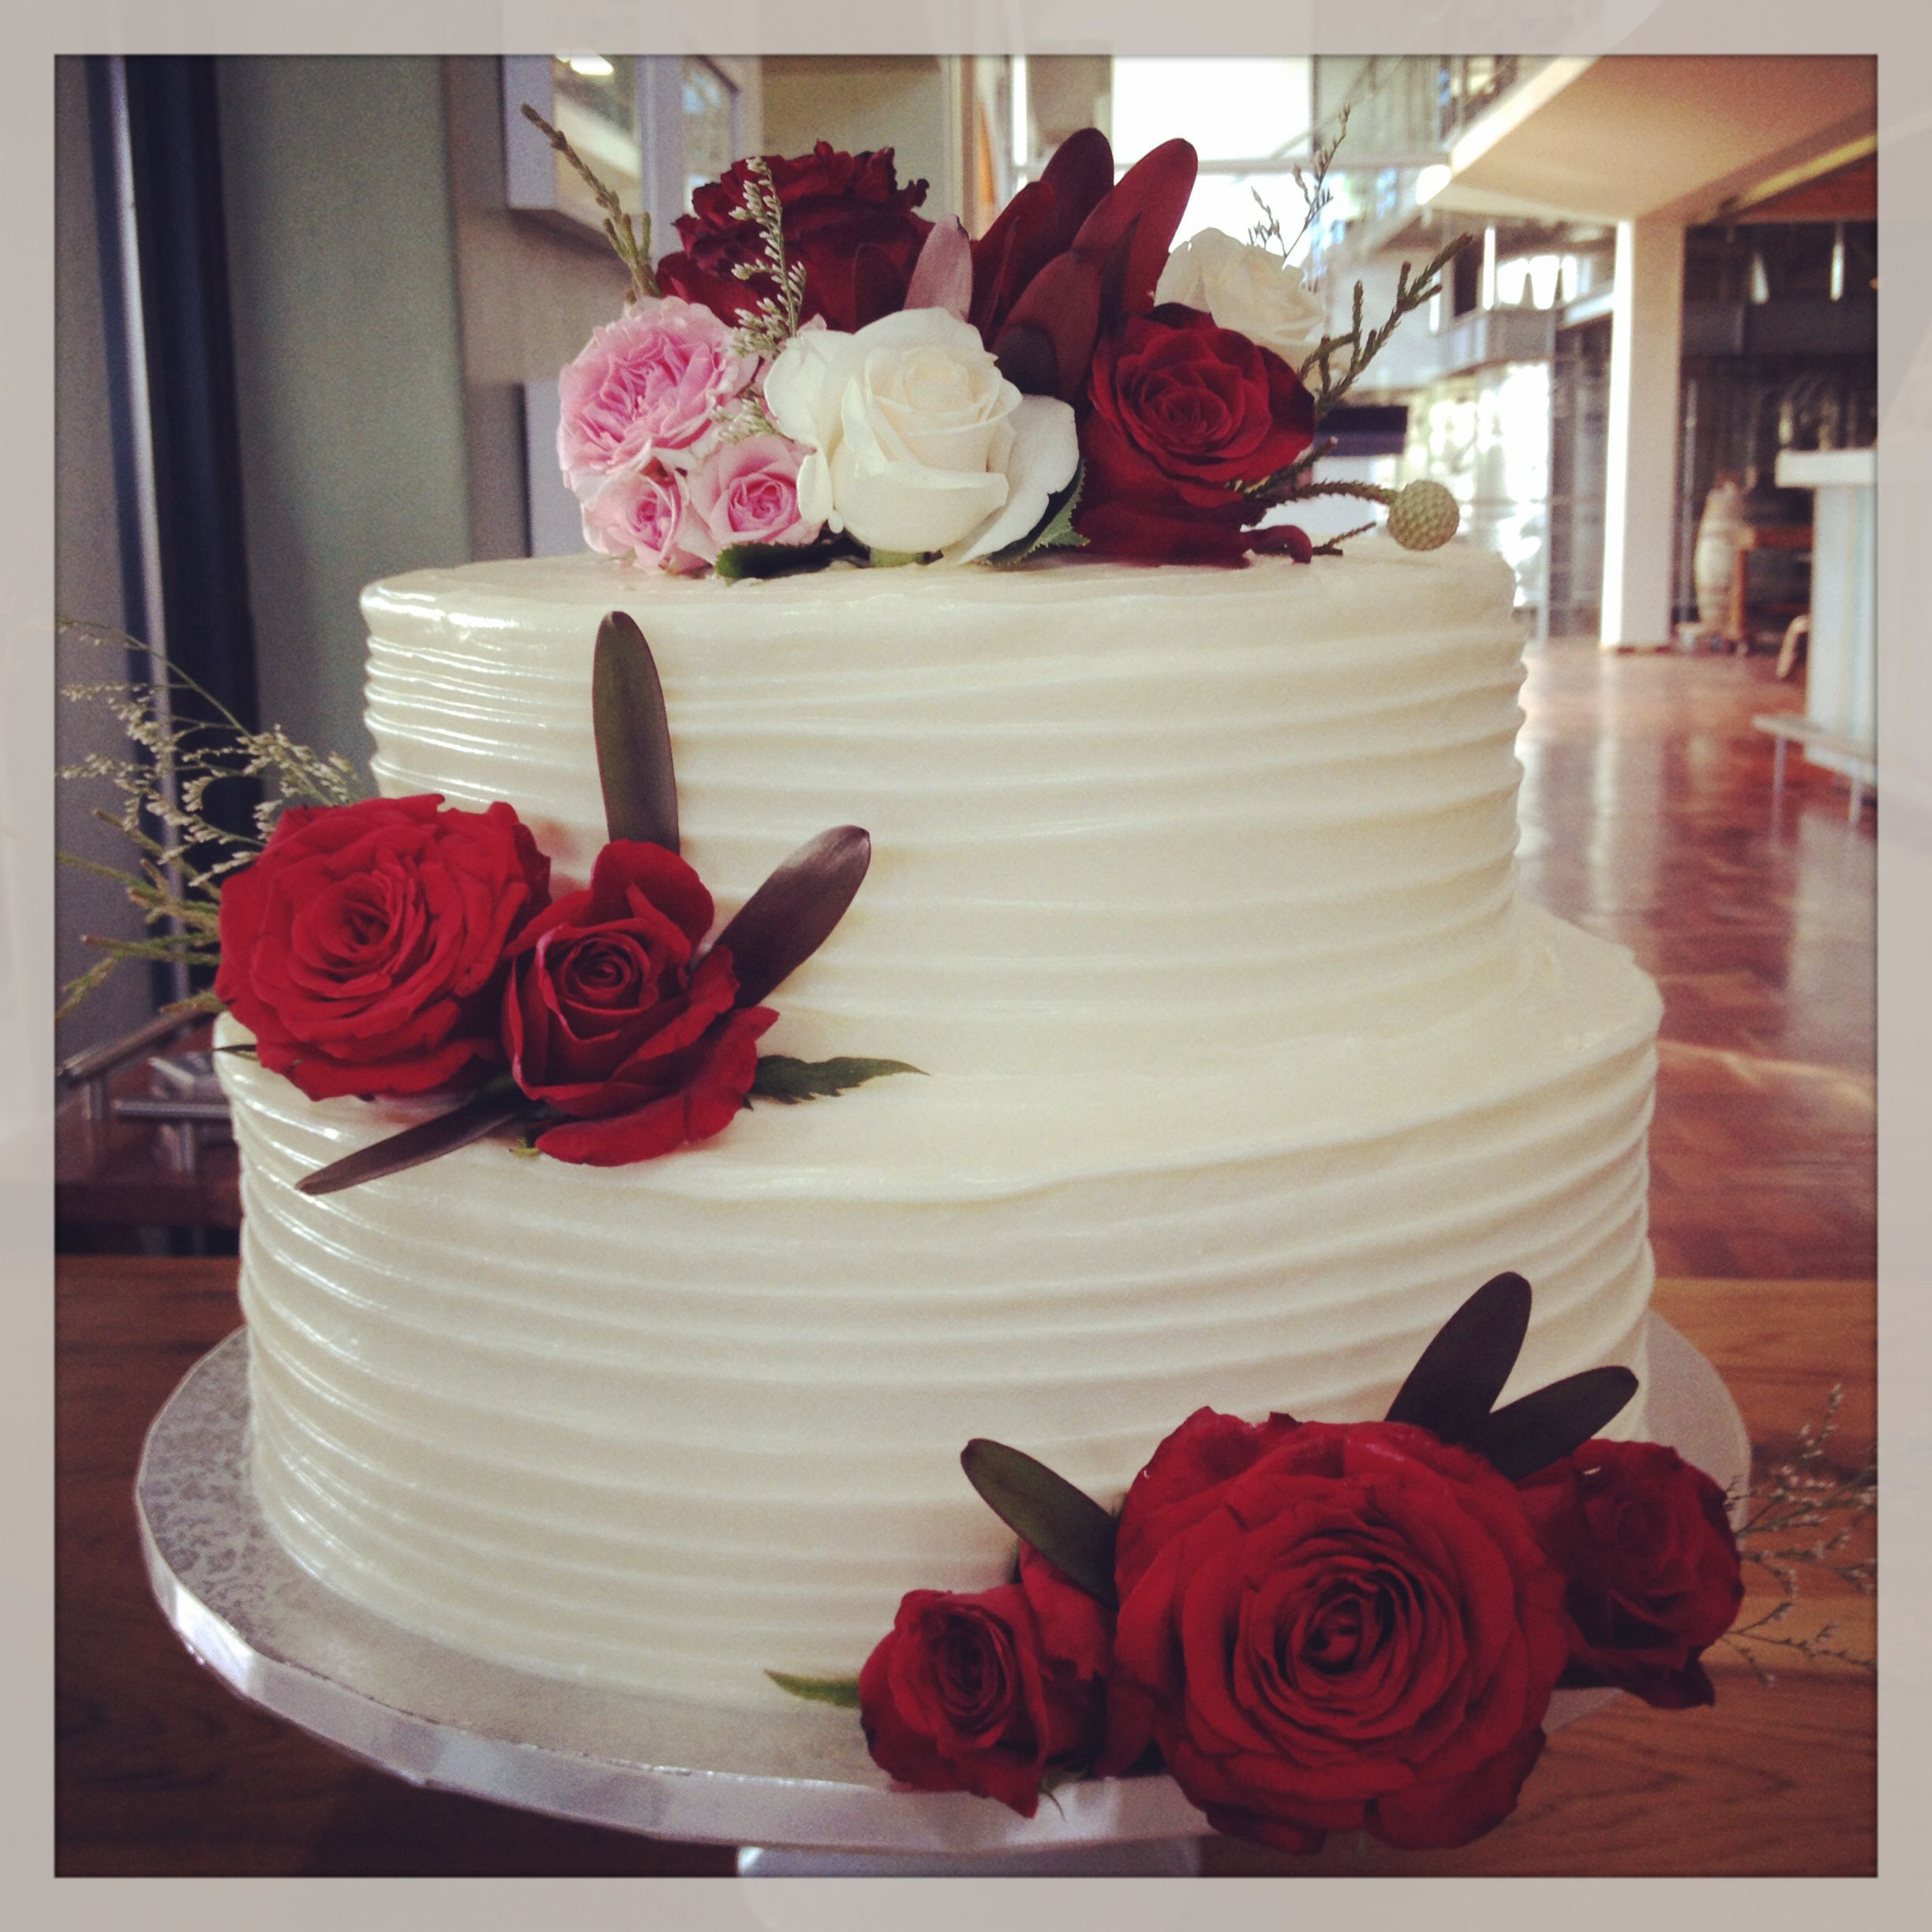 Two Tier Red Velvet Cake With Cream Cheese Frosting By The